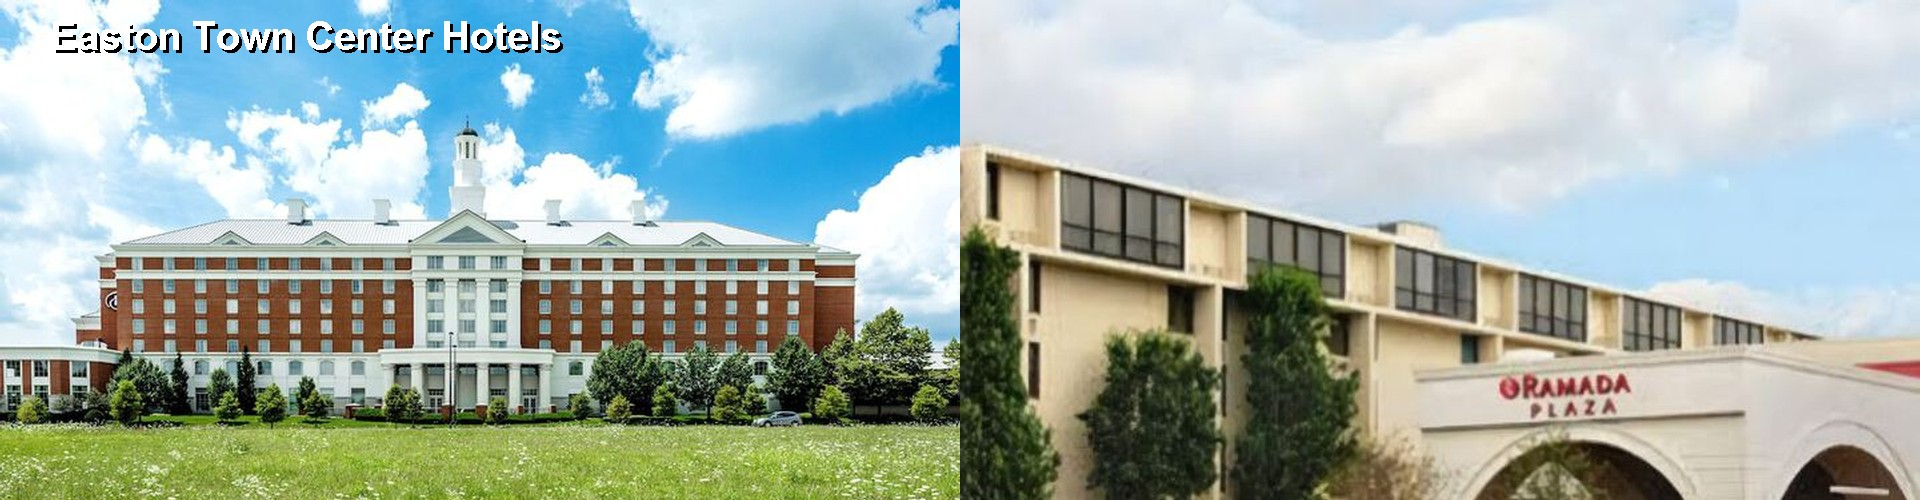 5 Best Hotels Near Easton Town Center